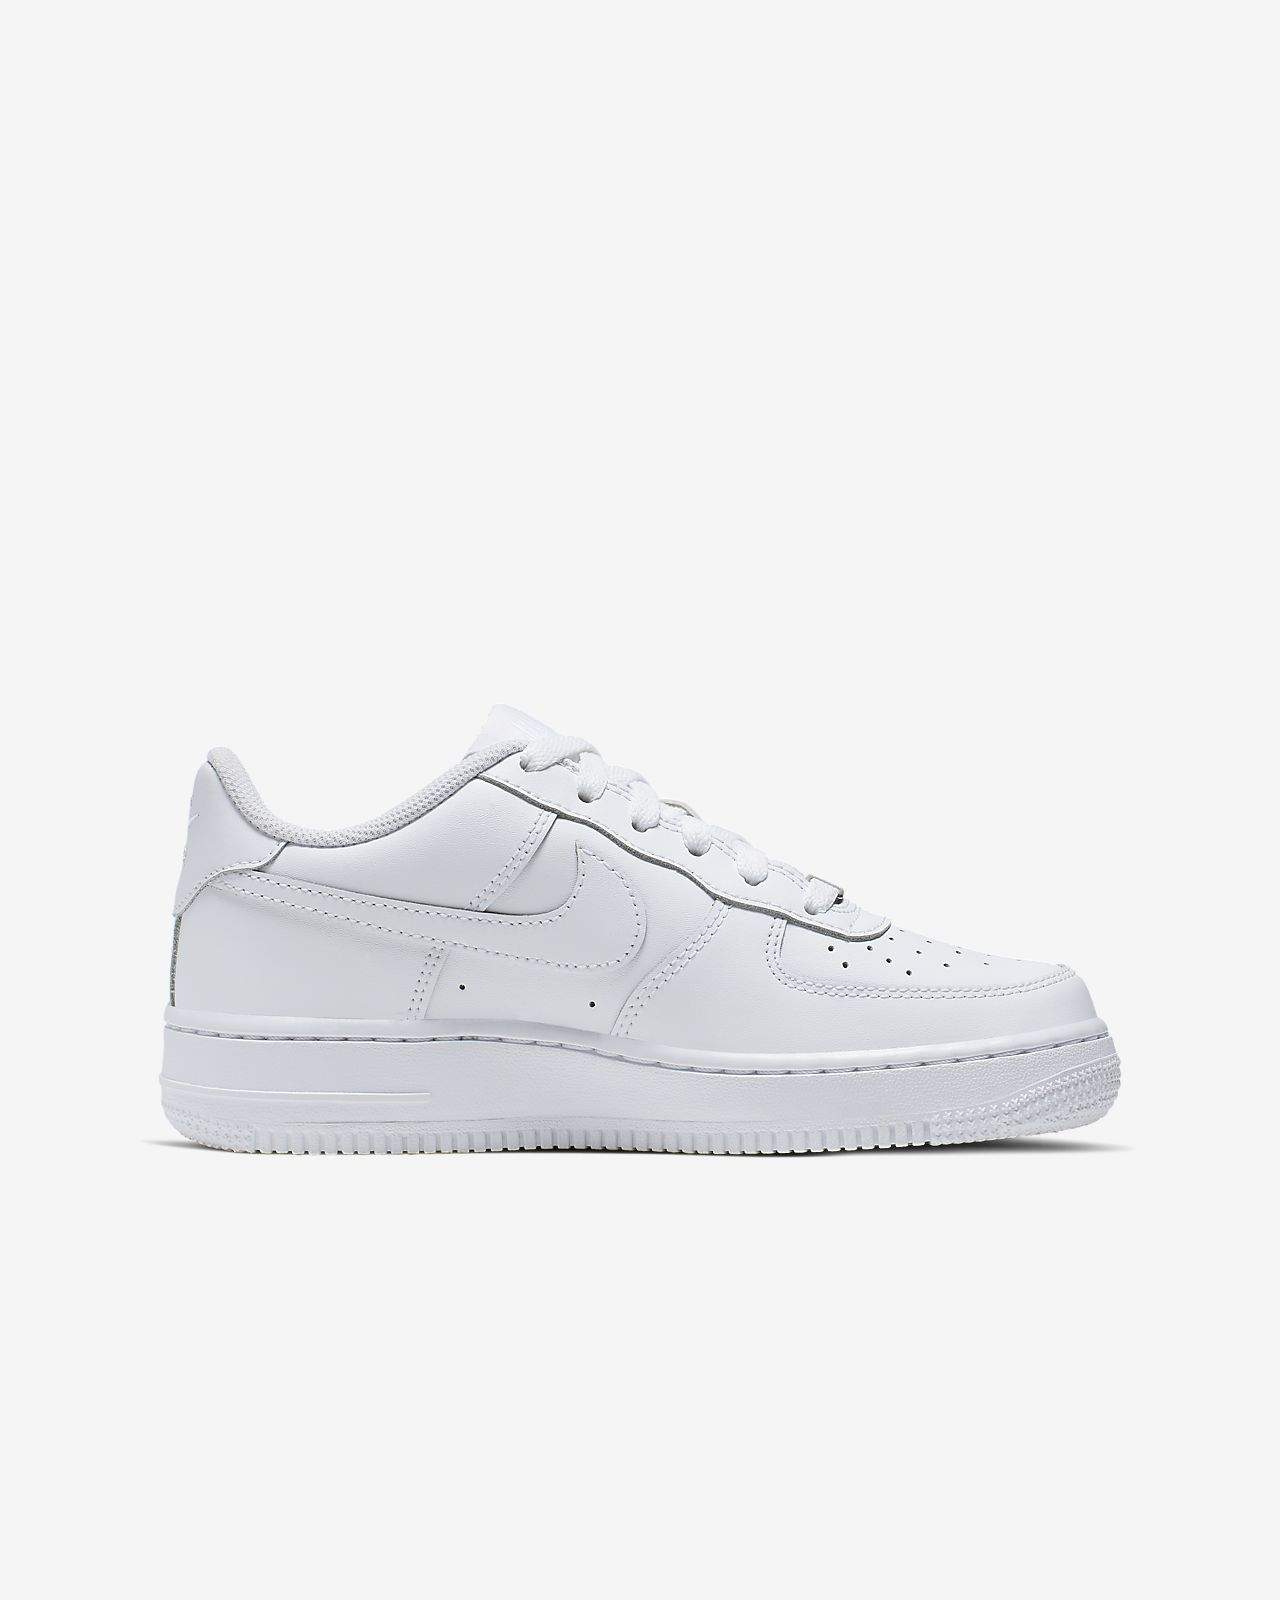 264e8f48fe Nike Air Force 1 Big Kids' Shoe. Nike.com